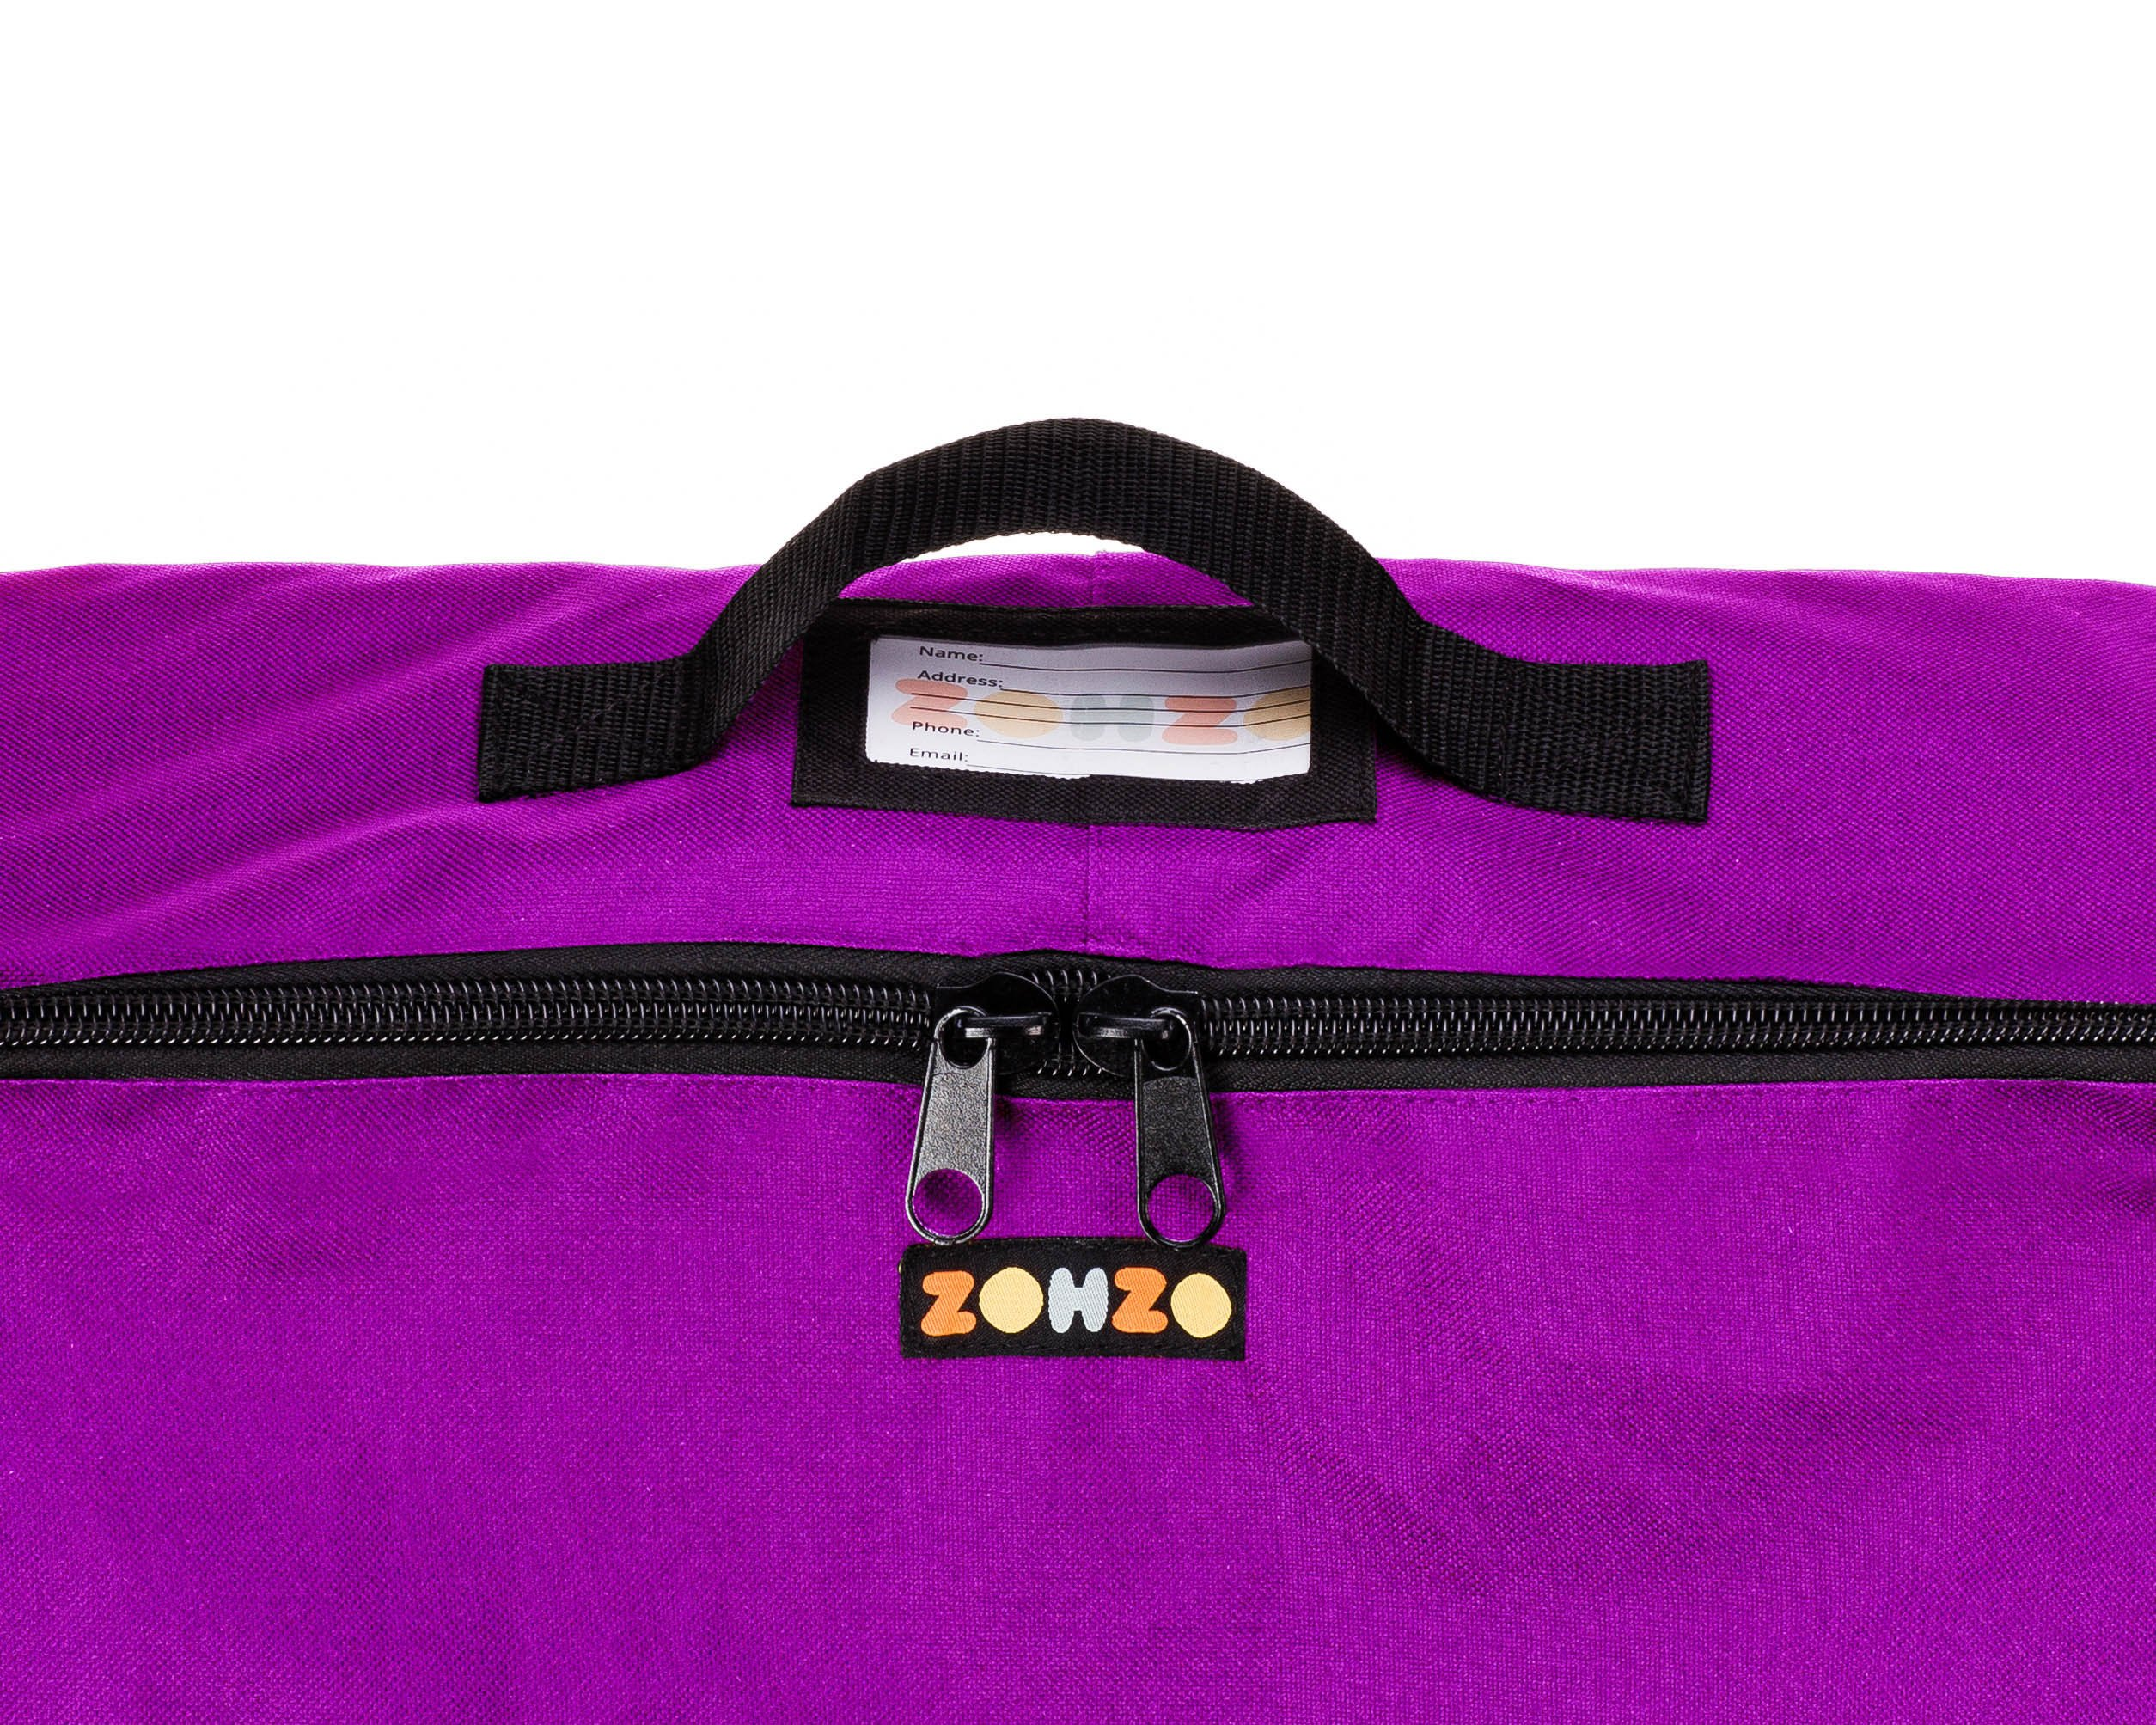 ZOHZO Car Seat Travel Bag — Adjustable, Padded Backpack for Car Seats — Car Seat Travel Tote — Save Money, Make Traveling Easier — Compatible with Most Name Brand Car Seats (Purple with Black Trim) by Zohzo (Image #5)